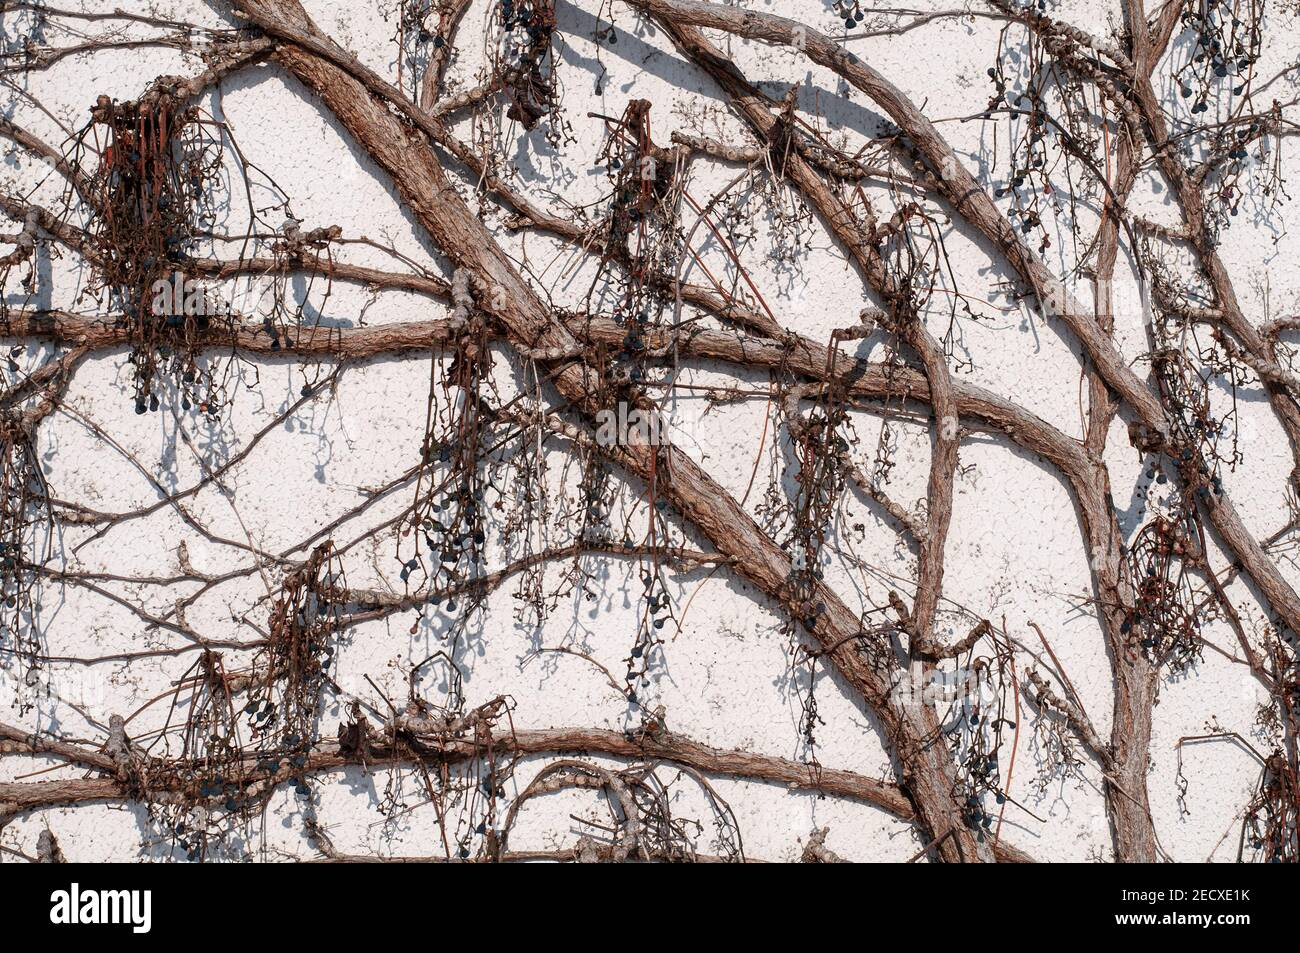 close-up of the bare twigs and branches of a climbing vine in winter with hanging grapes Stock Photo